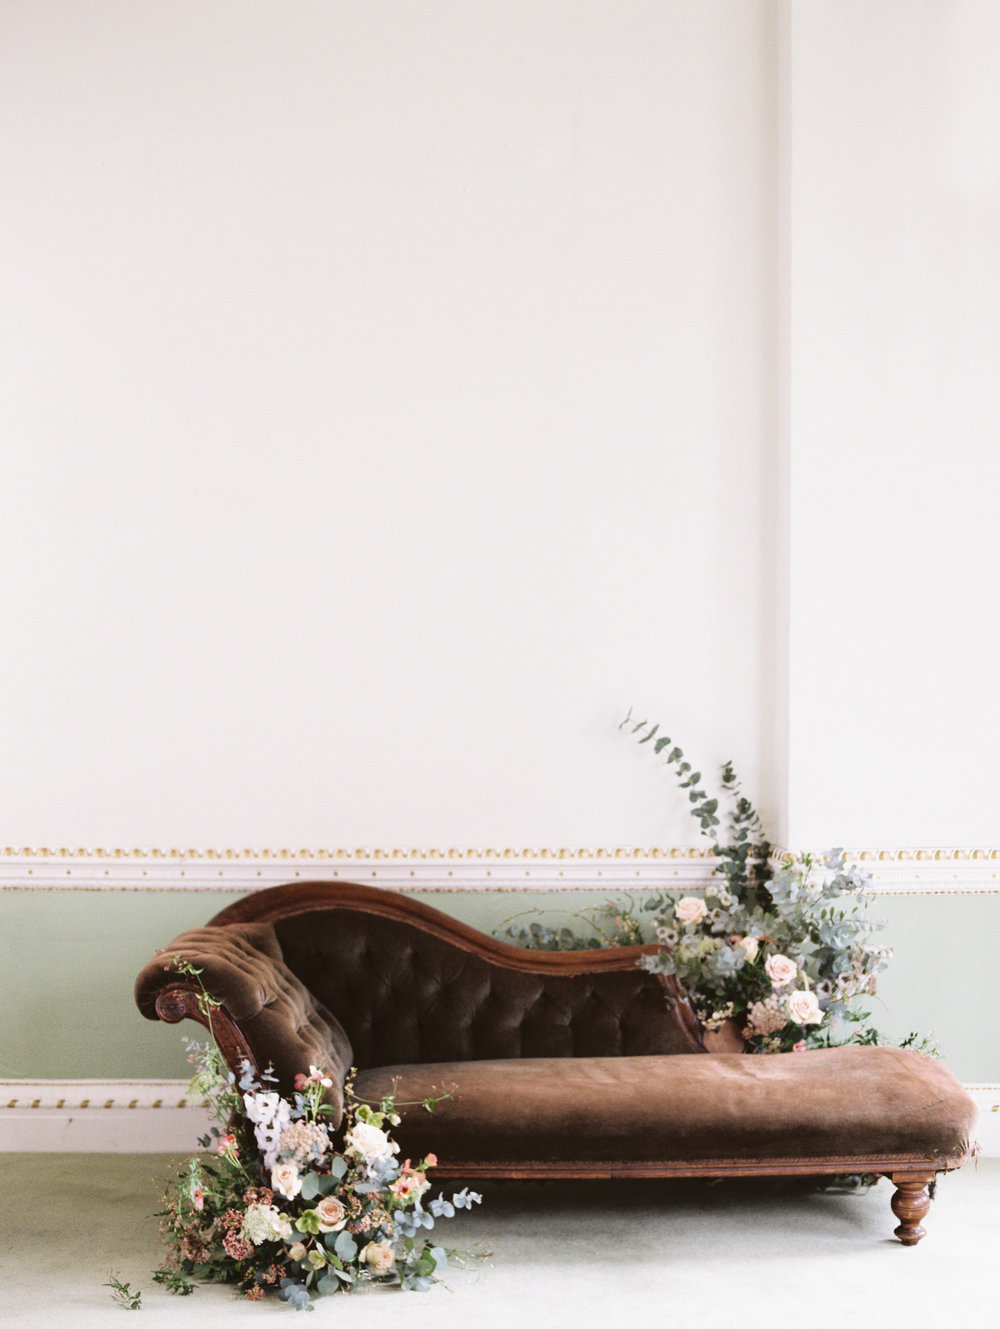 The Timeless Stylist-Elegant and Romantic Wedding Styling-Wedding Floral Installation on Chaise.jpg